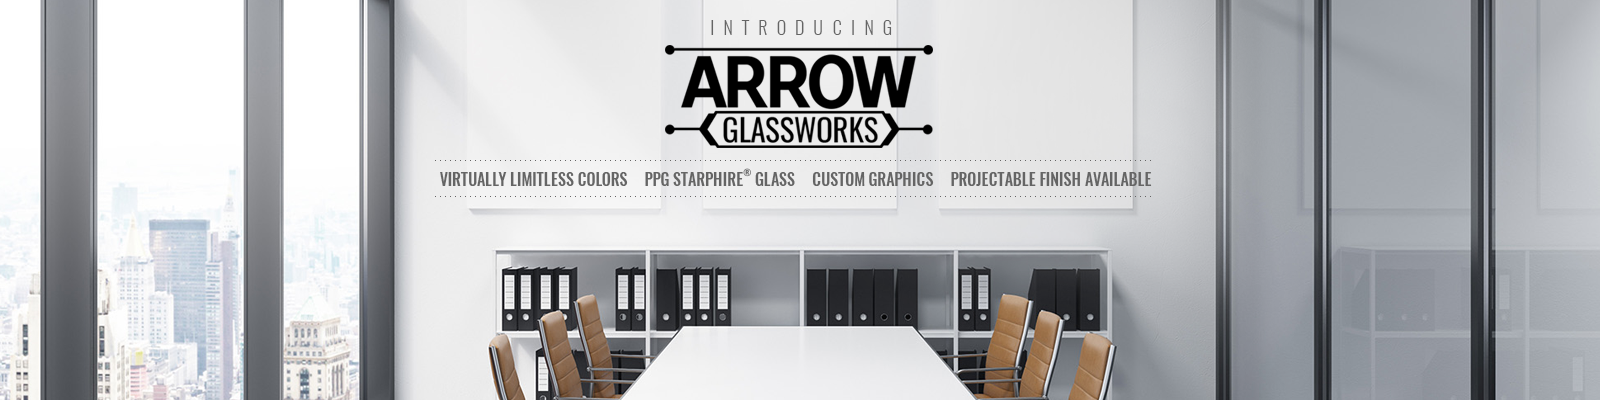 Introducing Arrow Glassworks